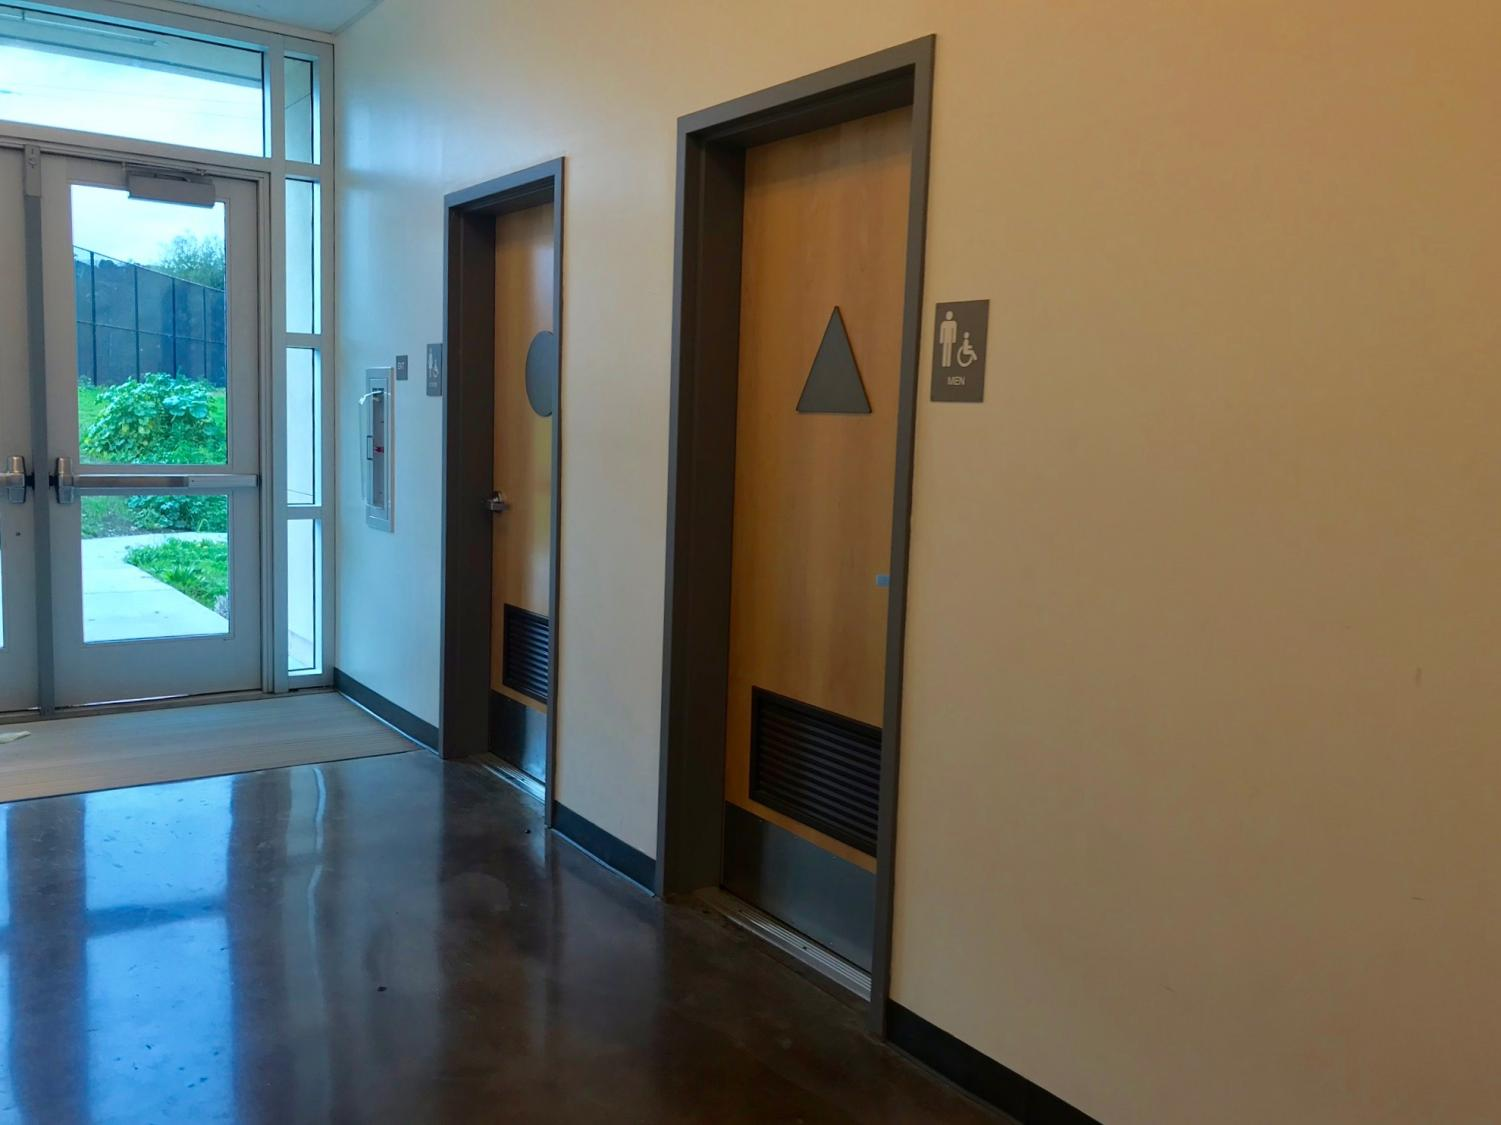 I-wing bathrooms have been reported closed over five times.